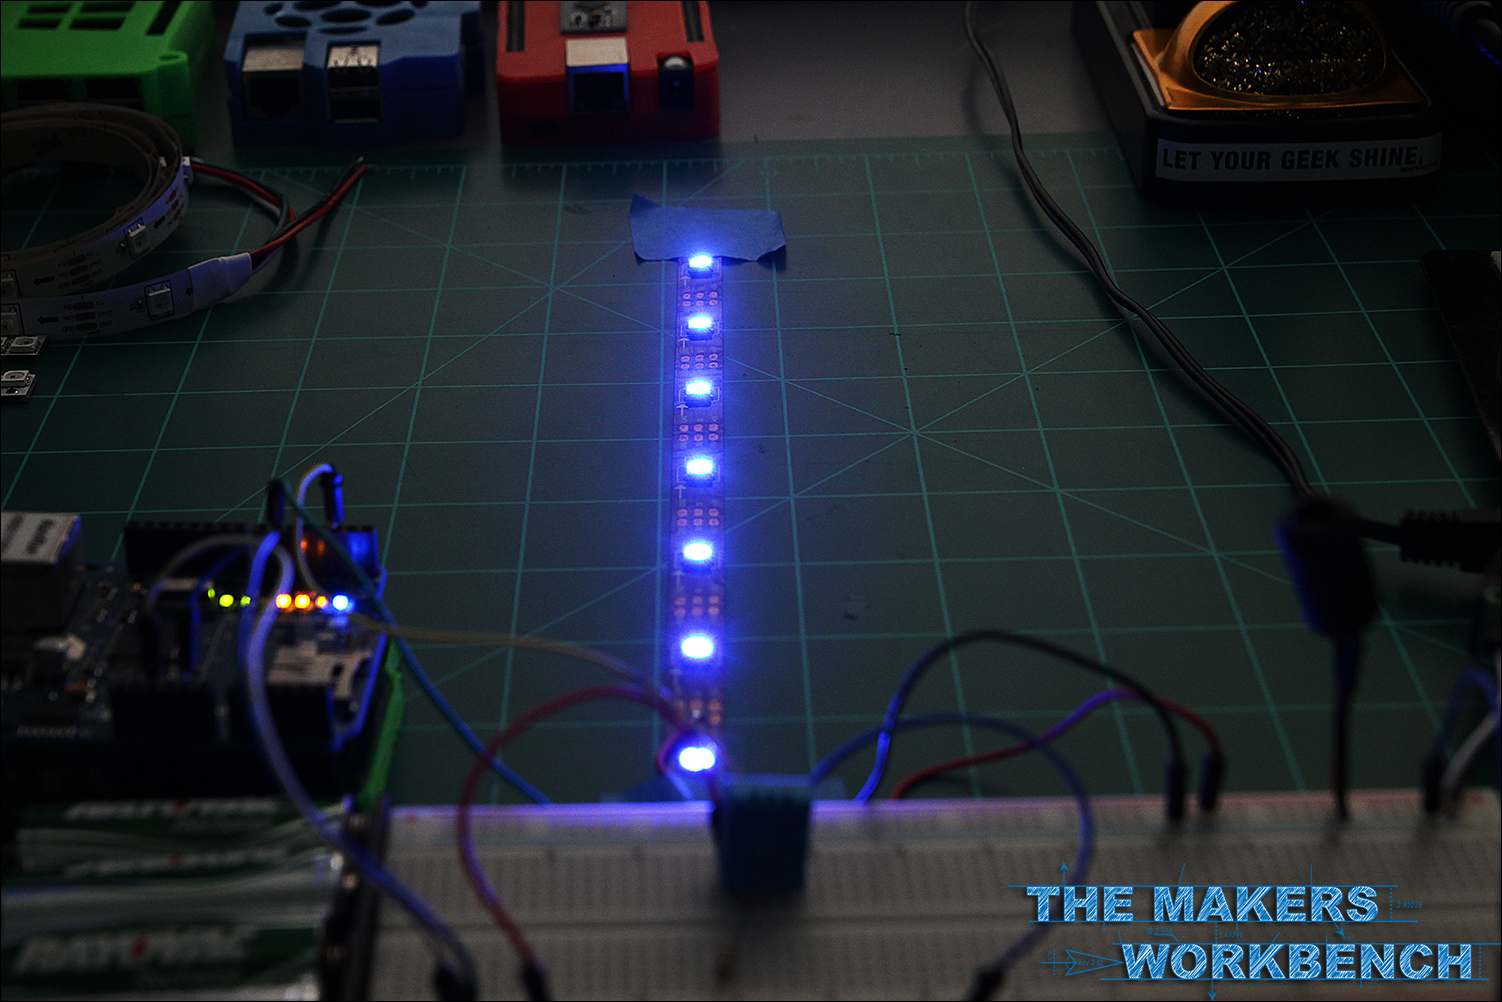 DHT11 Temperature Monitoring and control of NeoPixels using an Ardiuno and an Ethernet Shield.